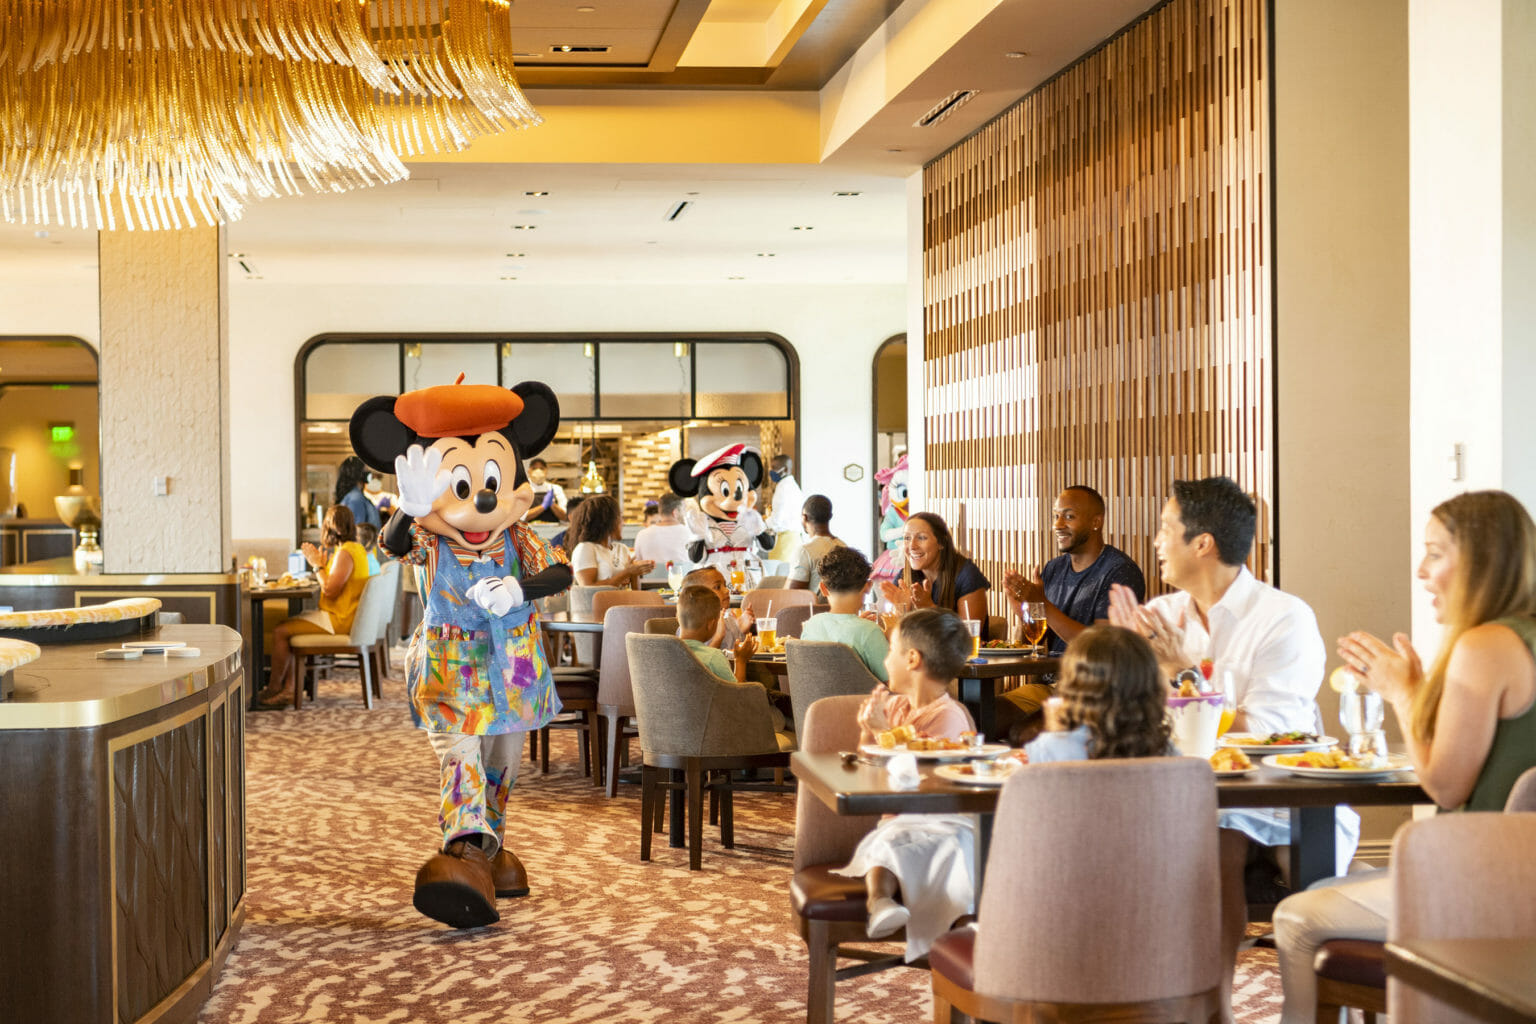 Walt Disney World's New Character Dining Experiences